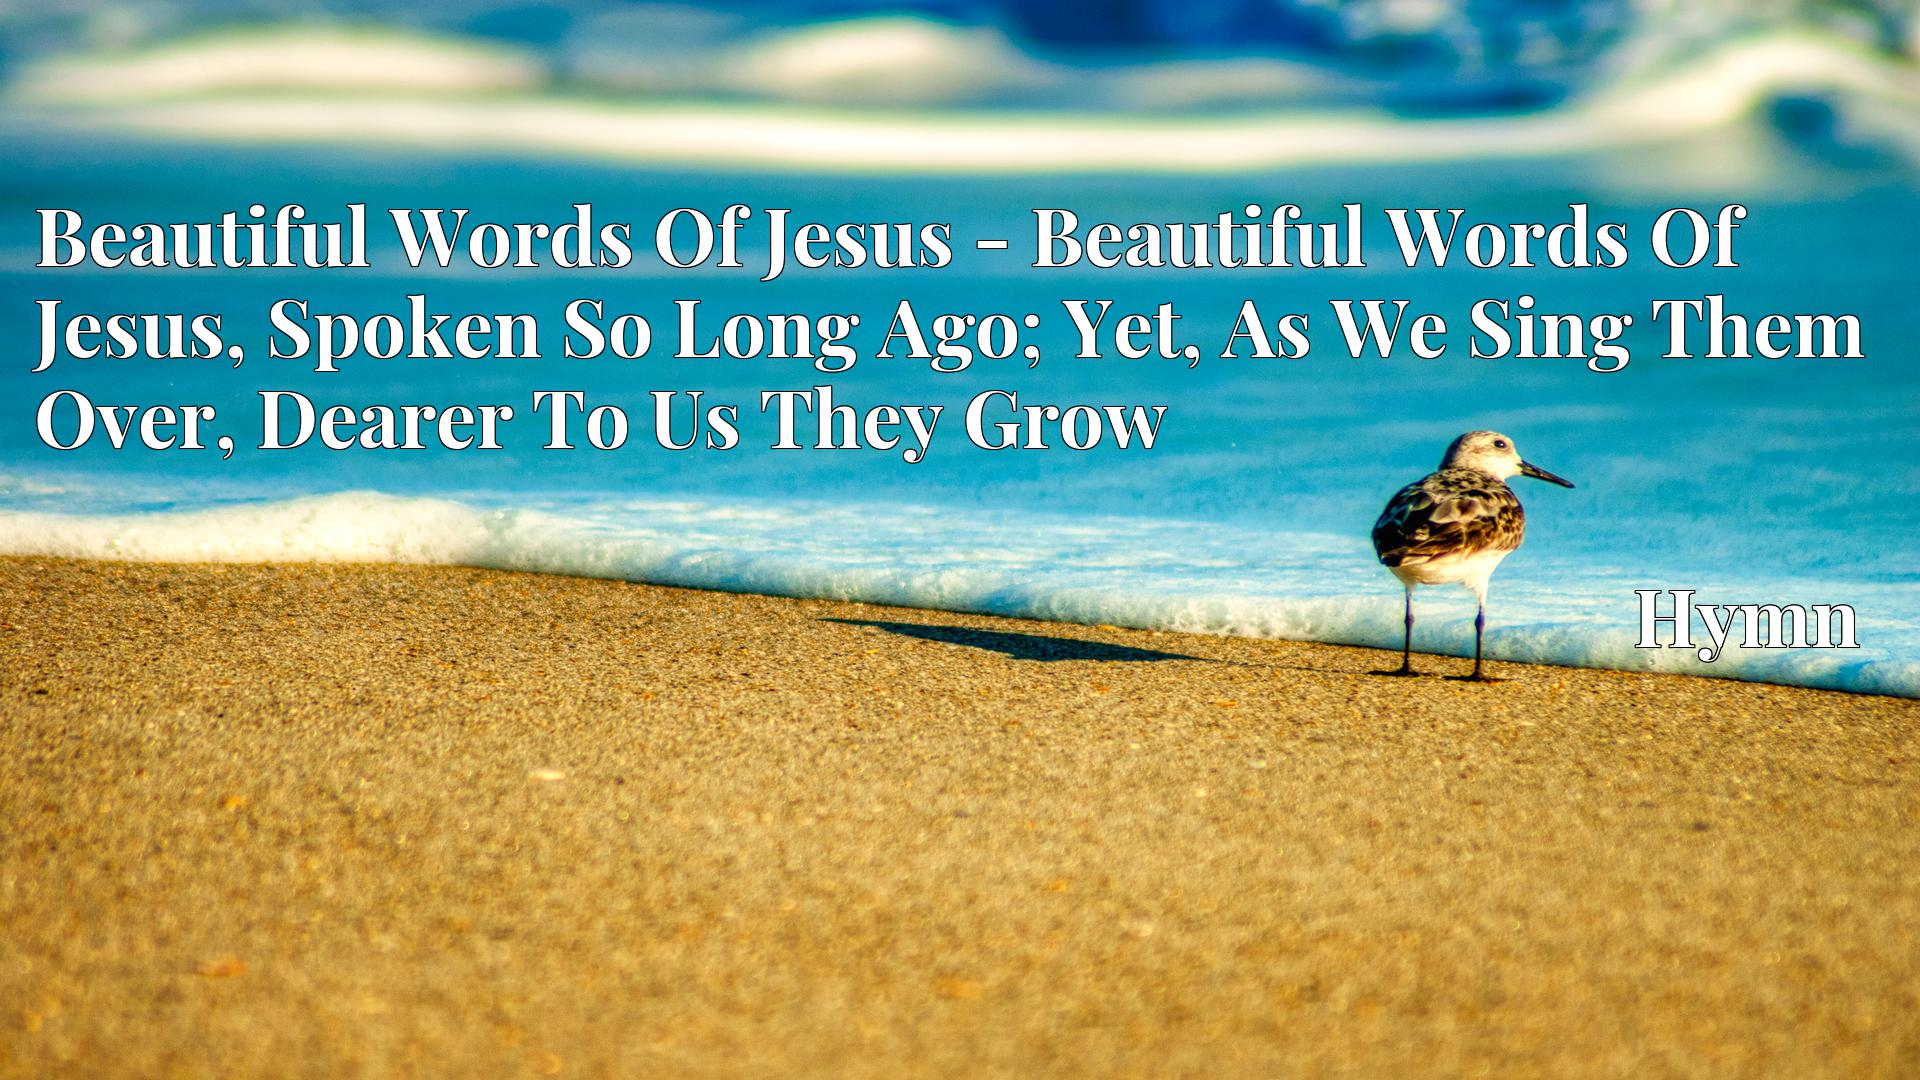 Beautiful Words Of Jesus - Beautiful Words Of Jesus, Spoken So Long Ago; Yet, As We Sing Them Over, Dearer To Us They Grow - Hymn